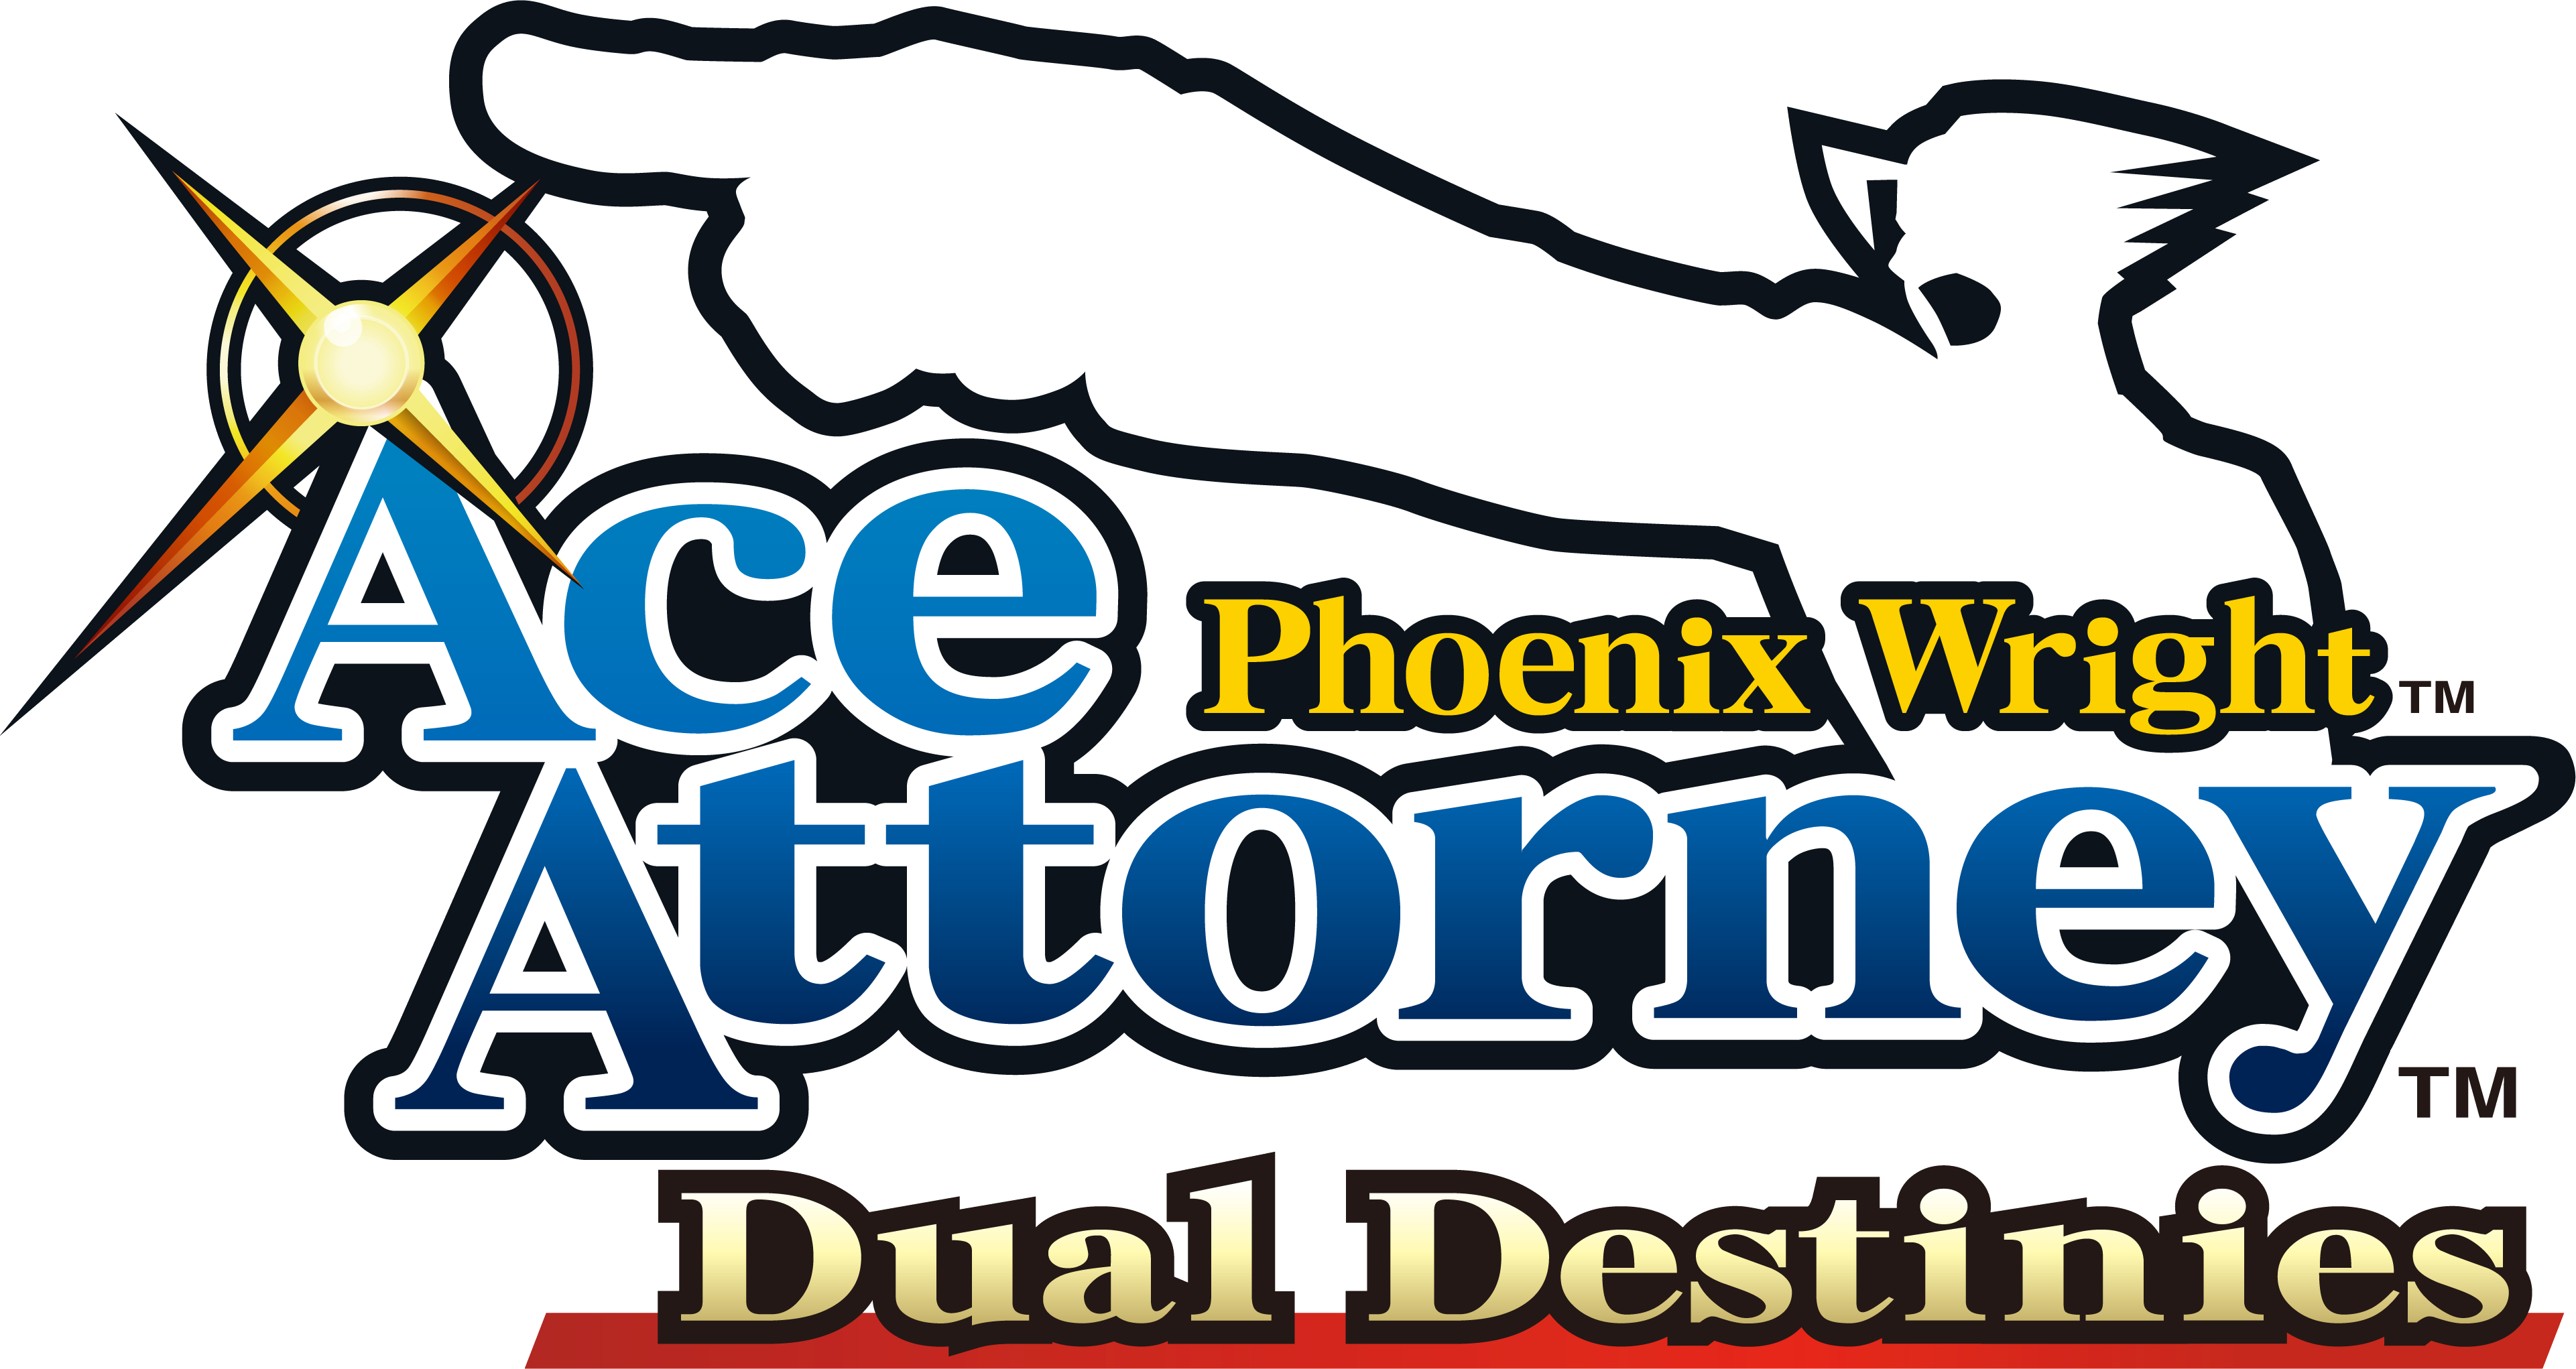 Phoenix_Wright_Ace_Attorney_Dual_Destinies_logo